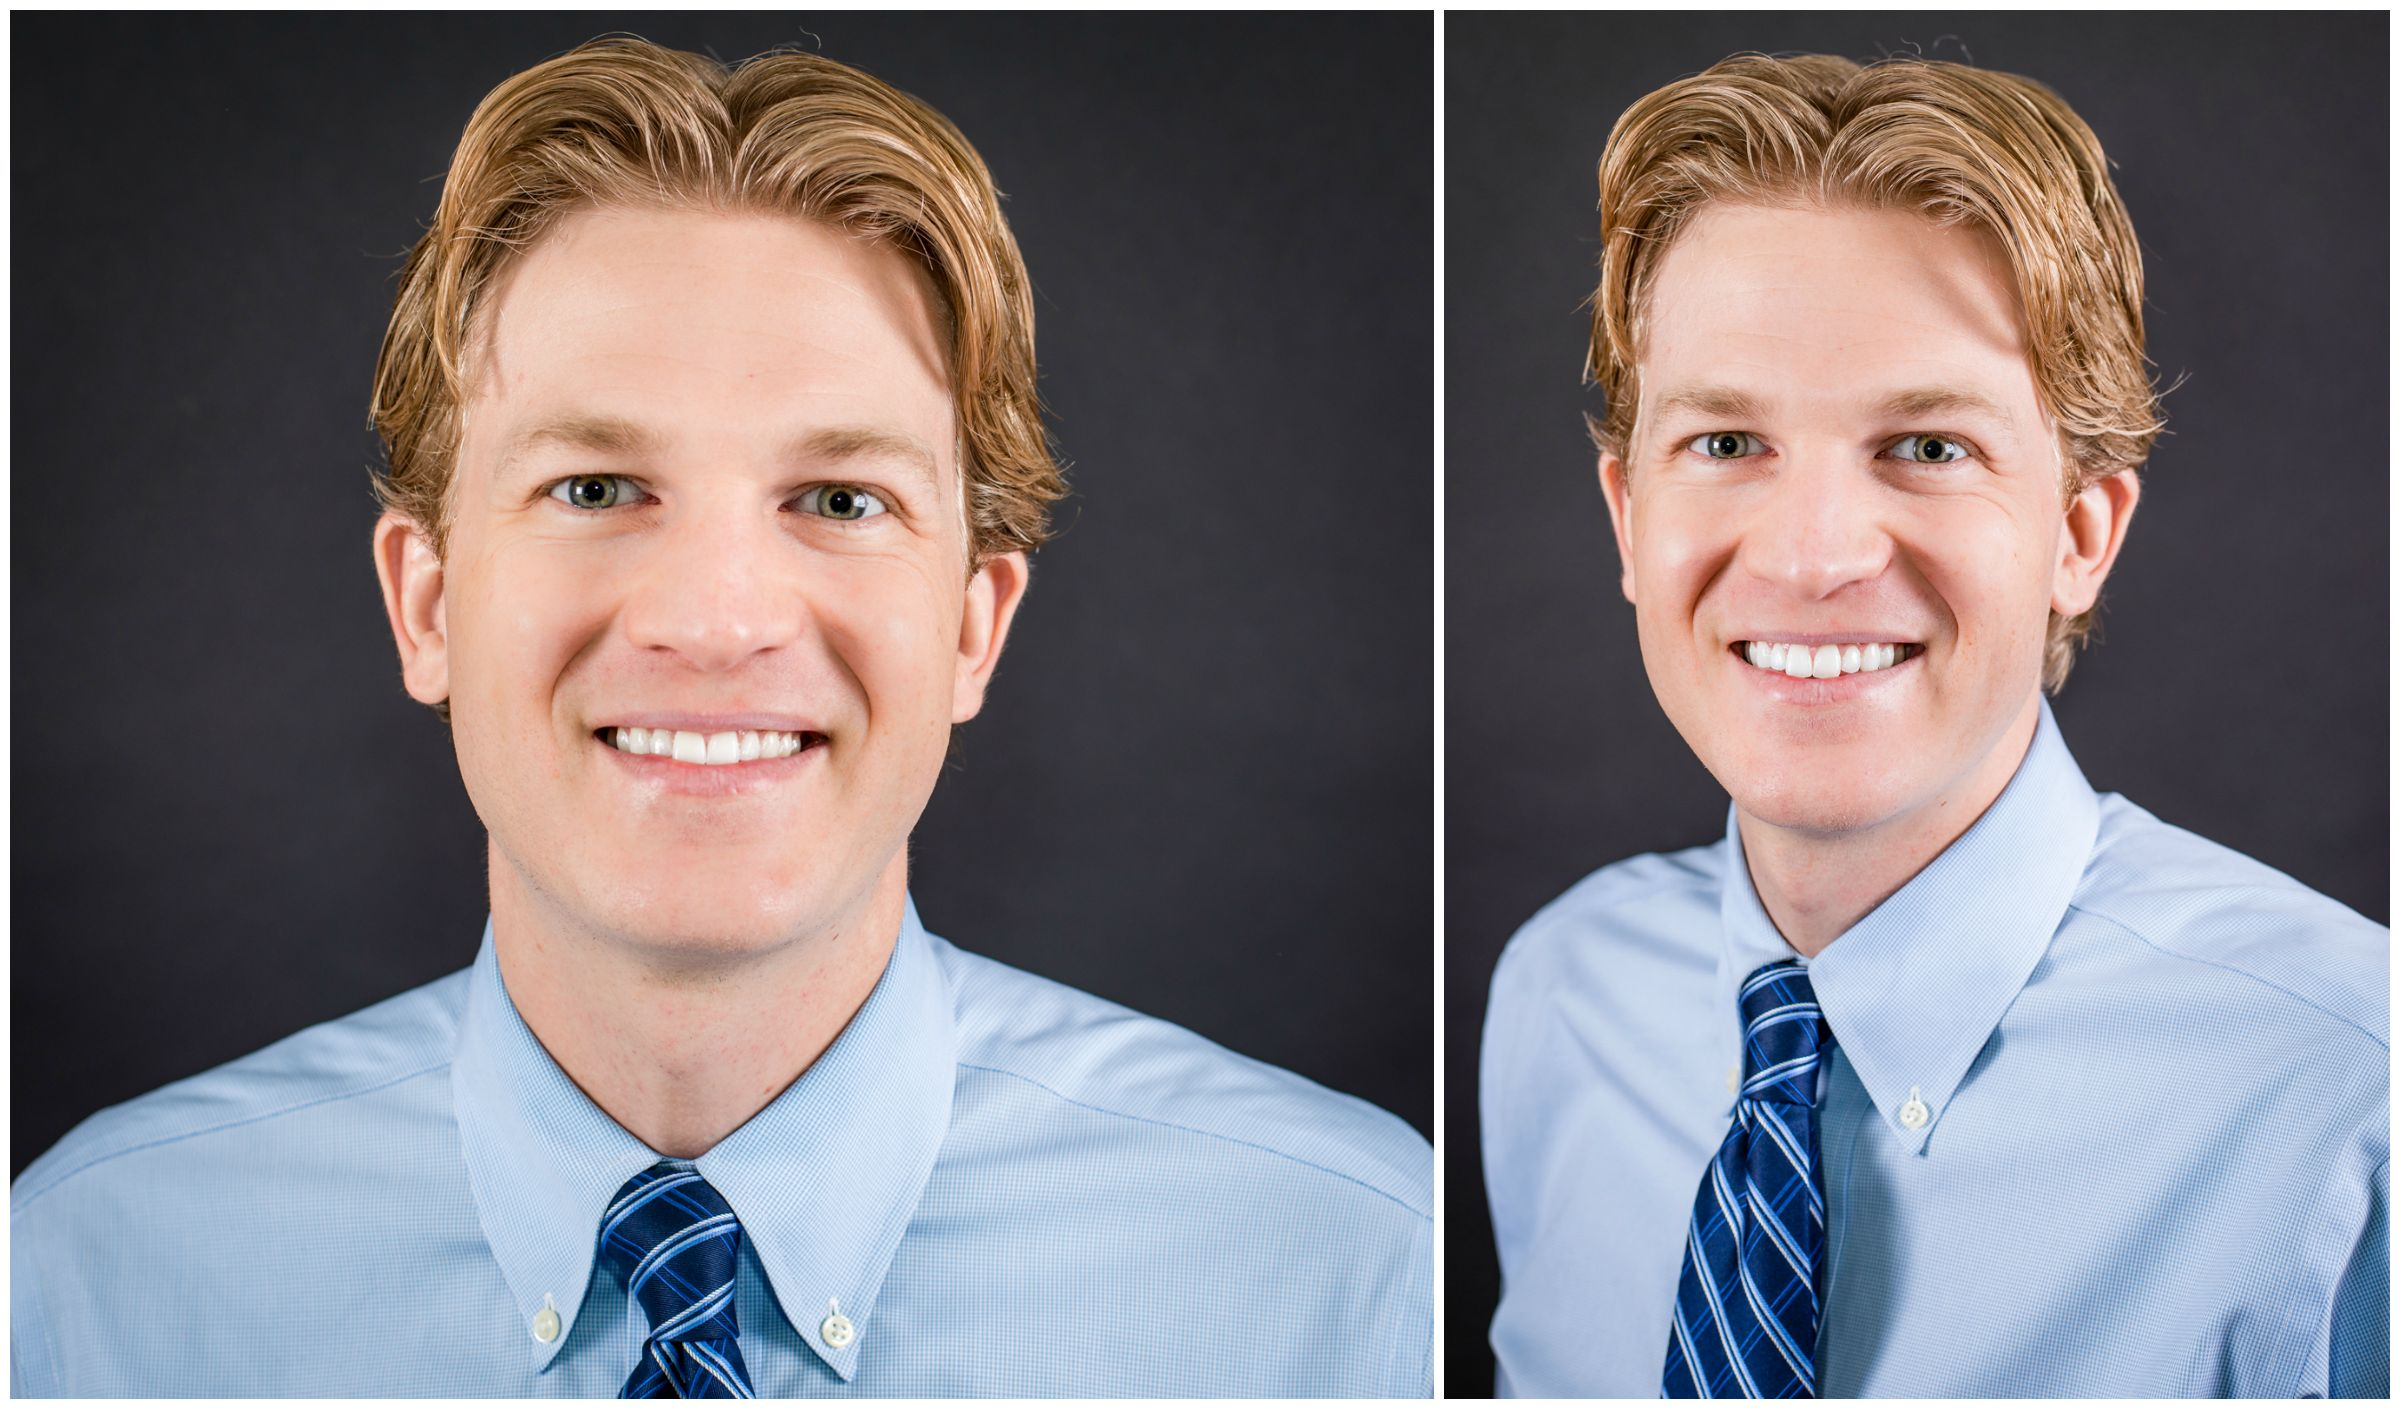 professional-linkedin-headshot-stamford-ct